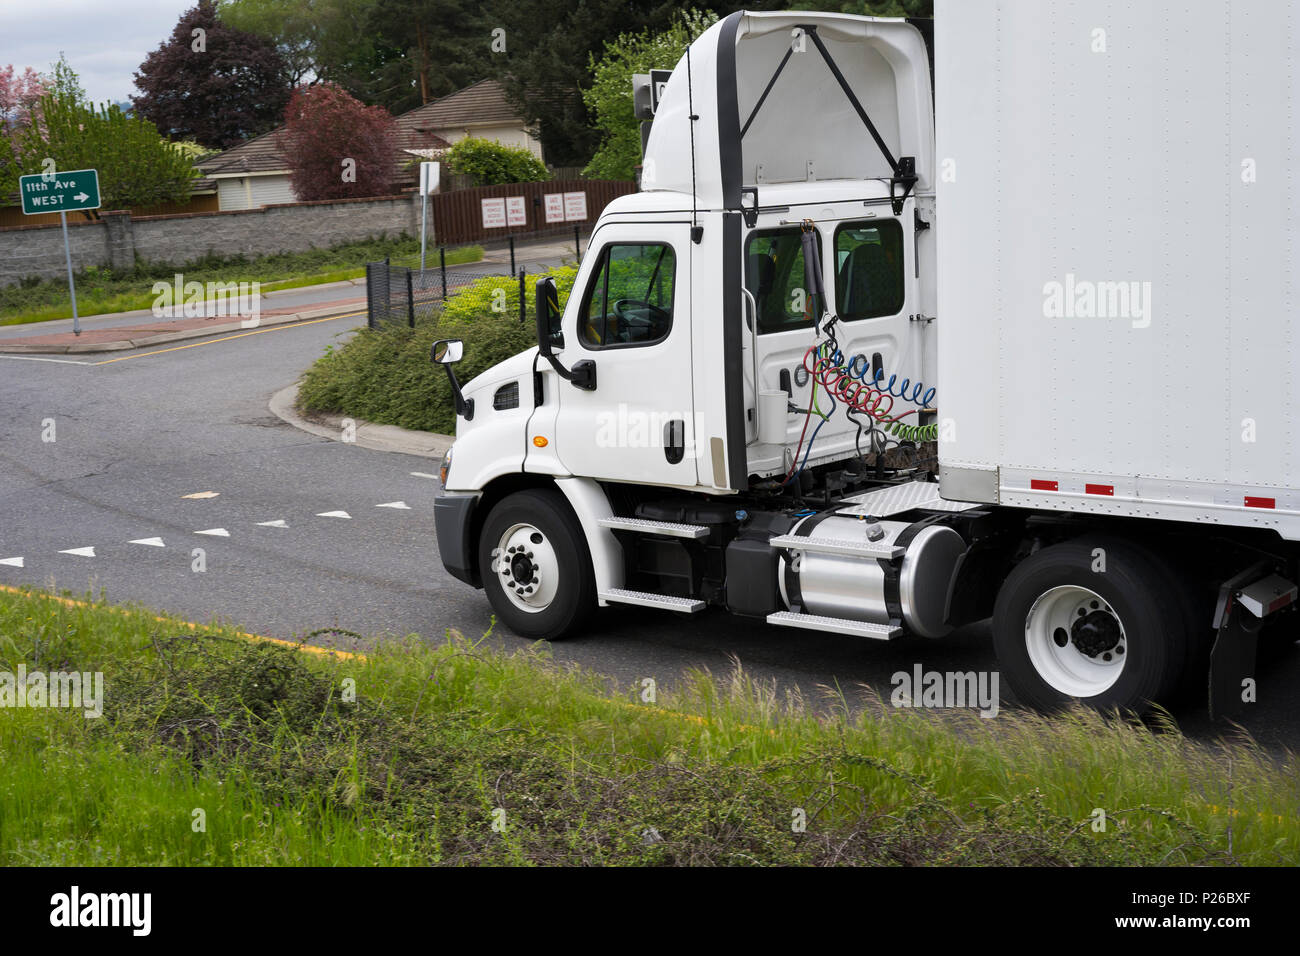 Commercial Big Rig White Day Cab Local Haul Semi Truck